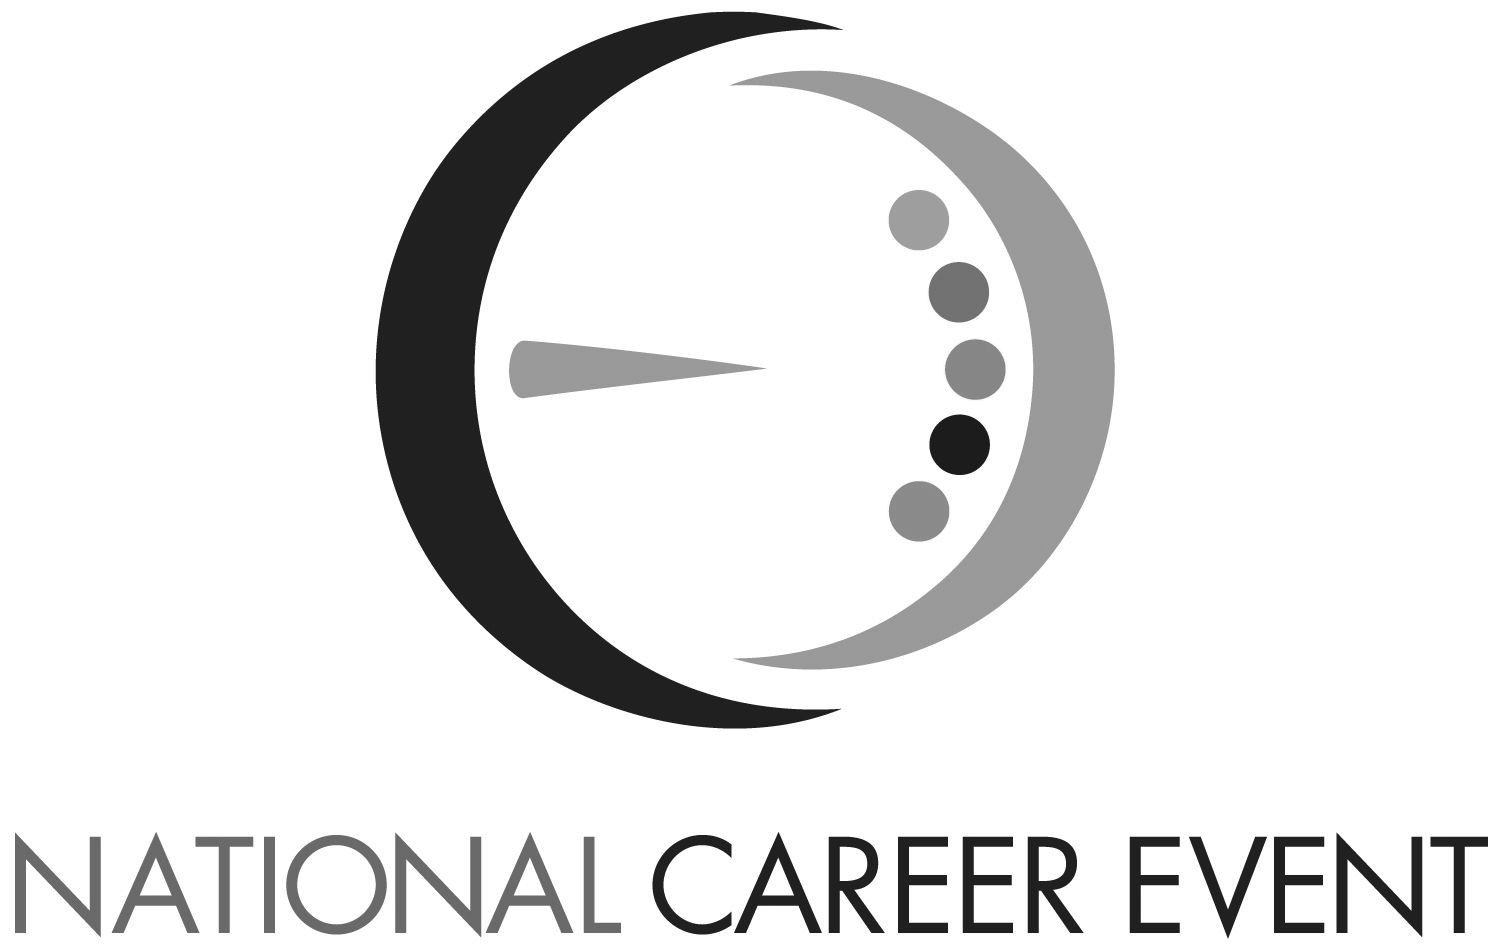 National Career Event at the Montreal Palais des Congrès